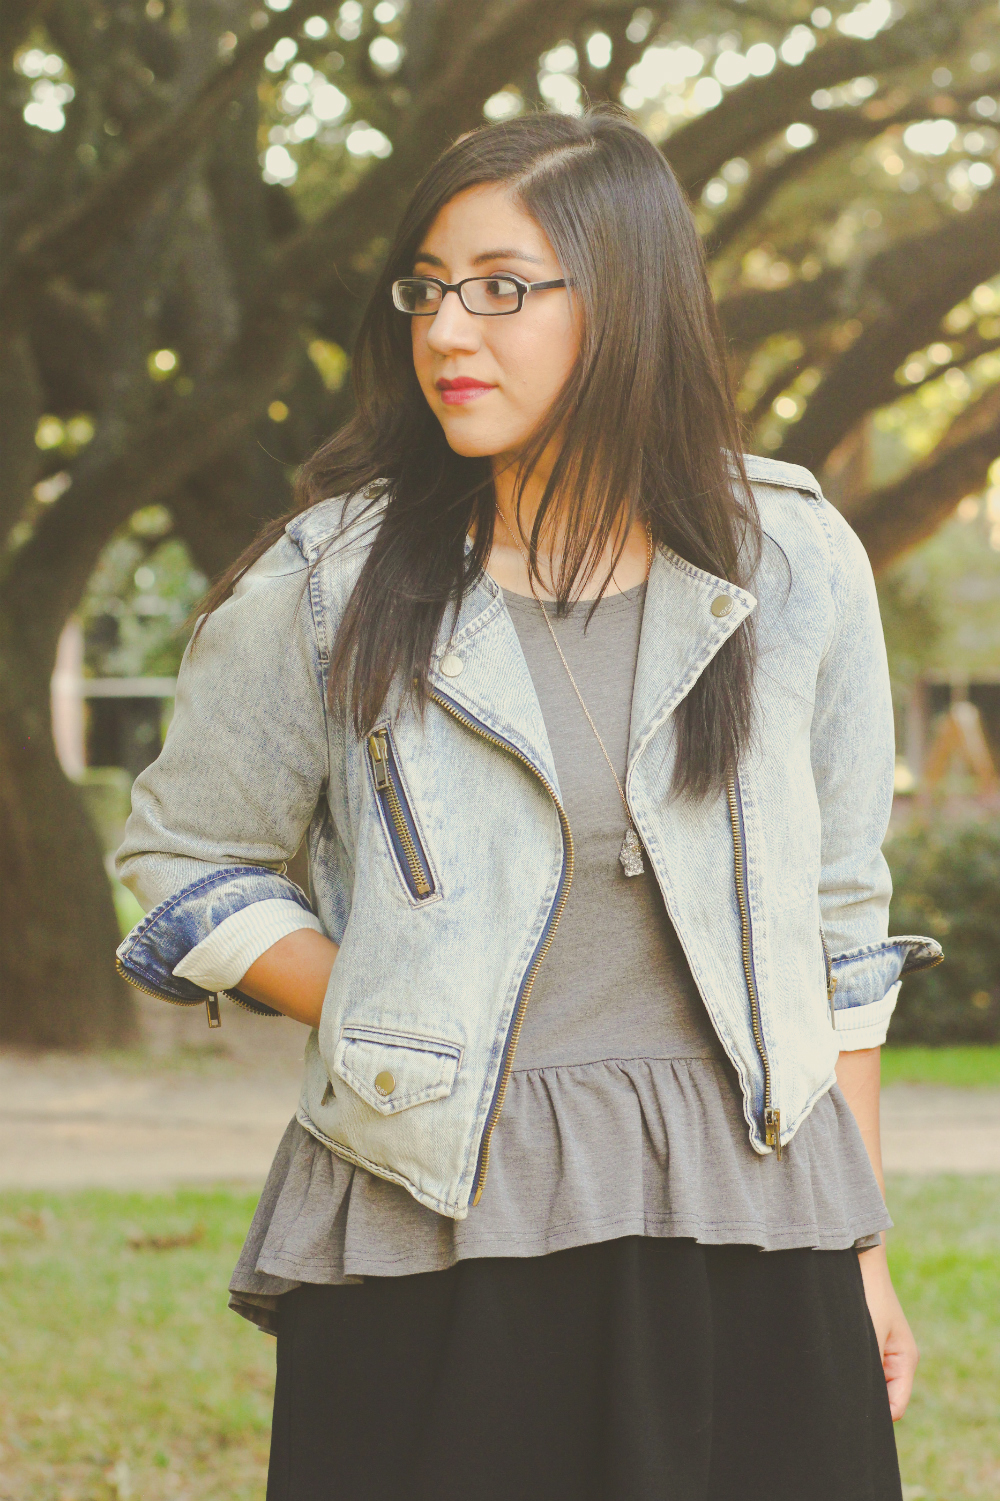 Leah from Morning Ink: Denim jacket + grey peplum top